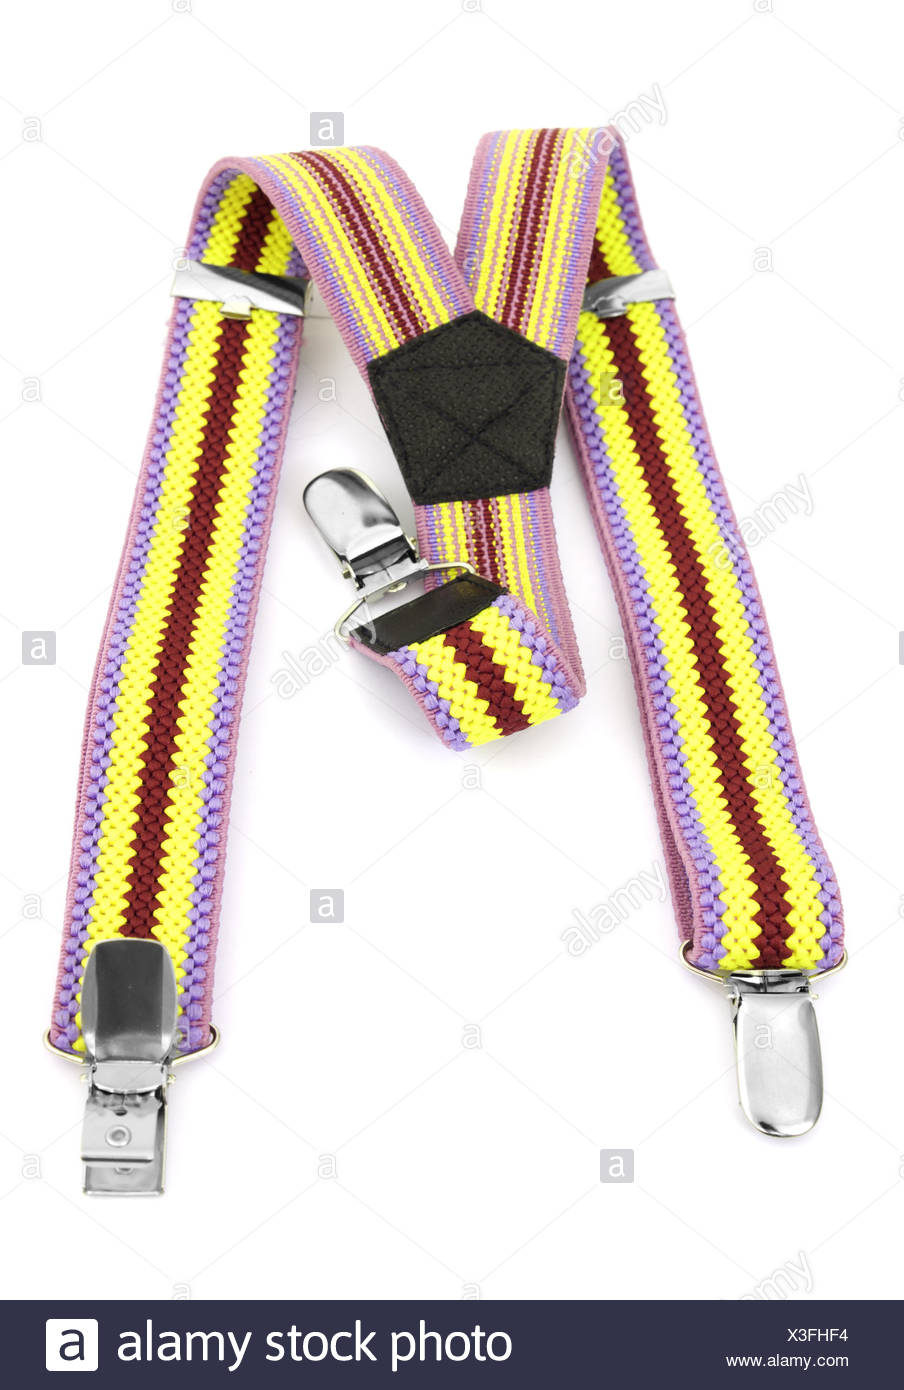 Kids colored suspenders - Stock Image